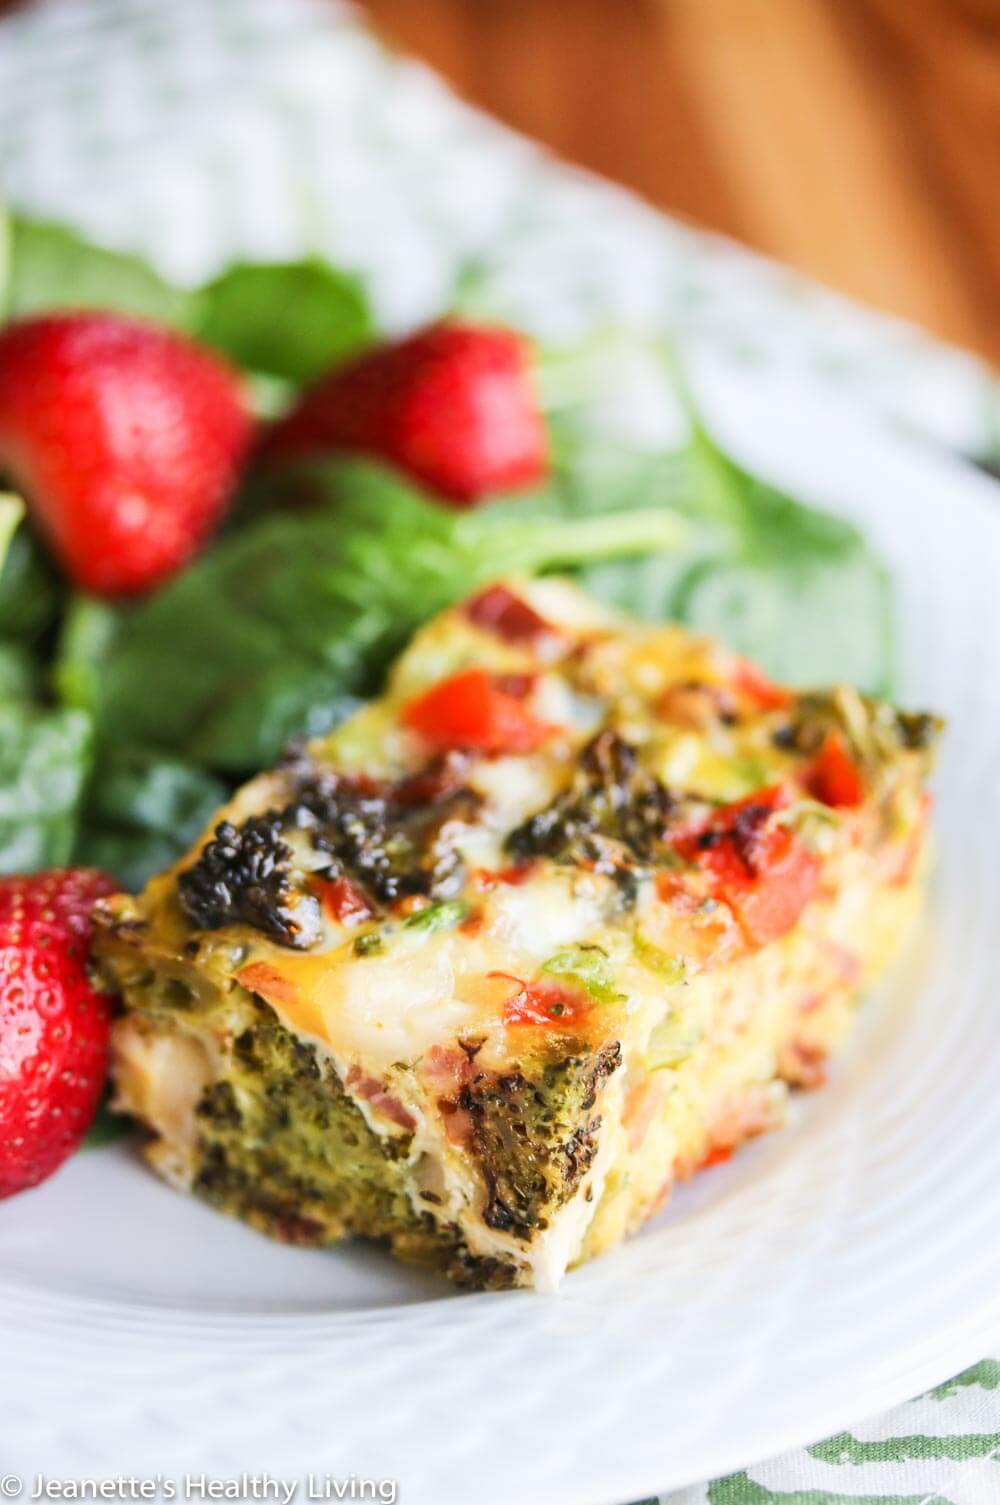 Roasted Broccoli Red Bell Pepper Pancetta Breakfast Casserole - great for a crowd at brunch!